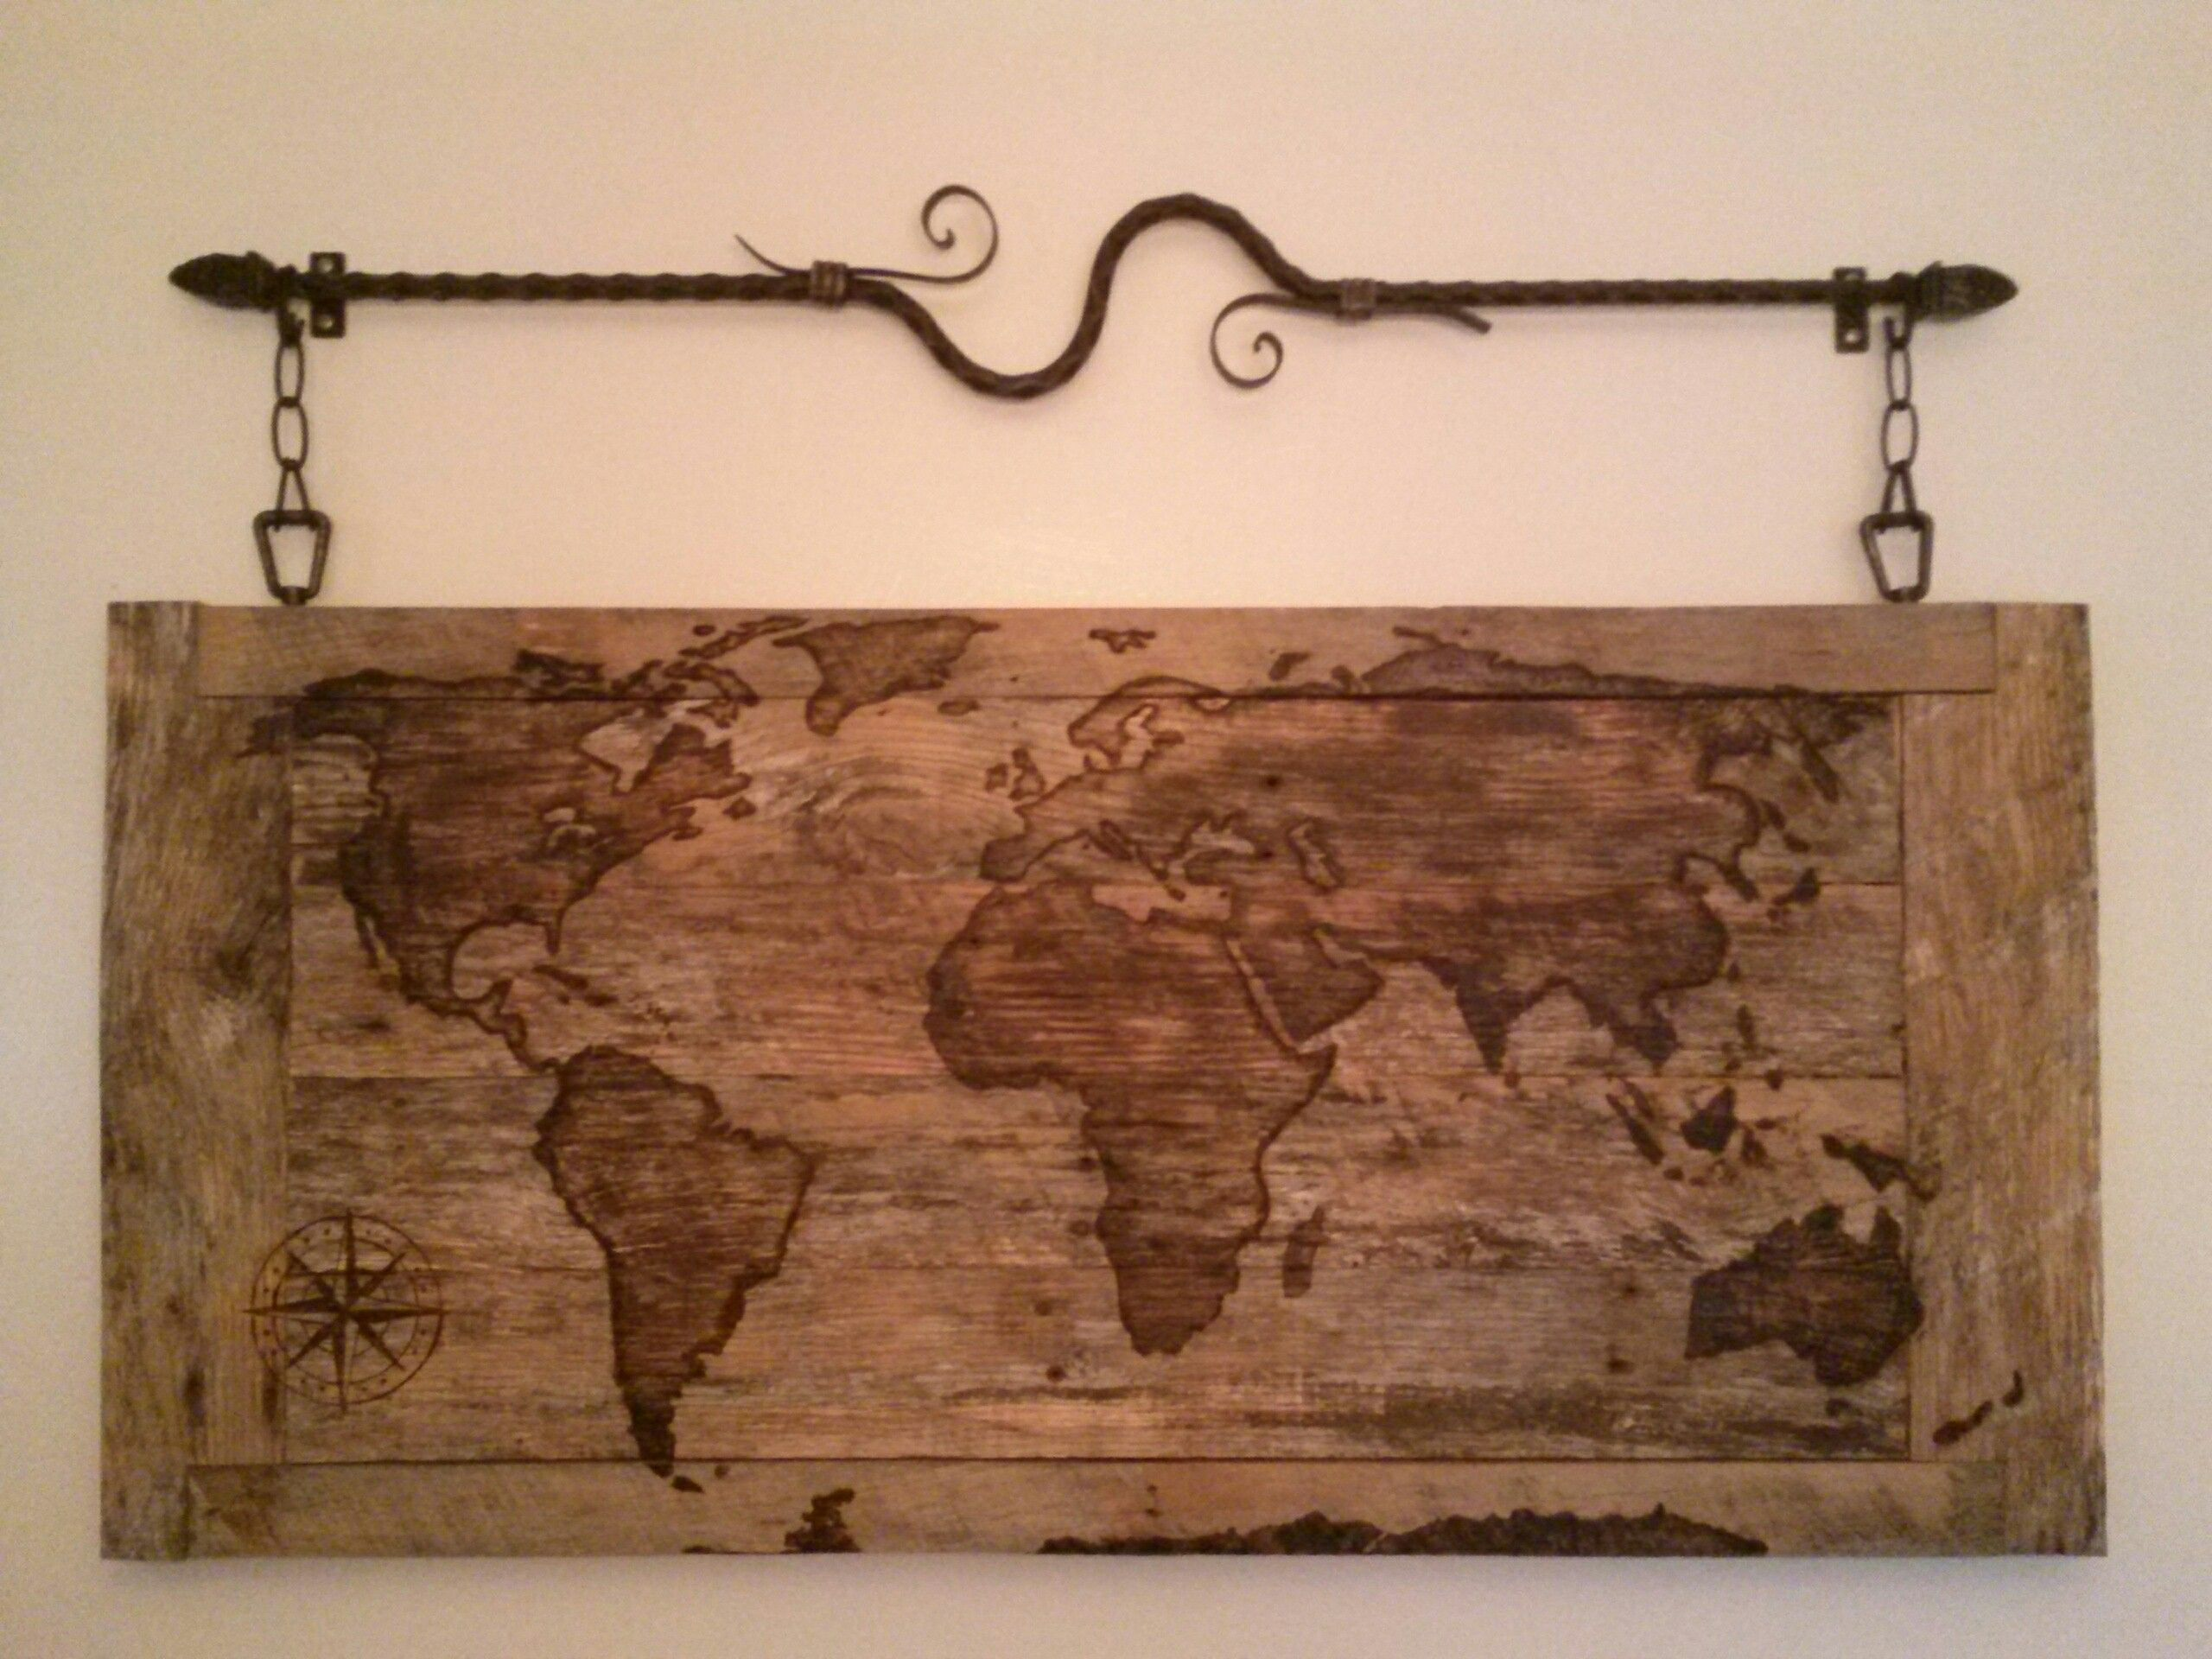 Wood burned world map on reclaimed wood